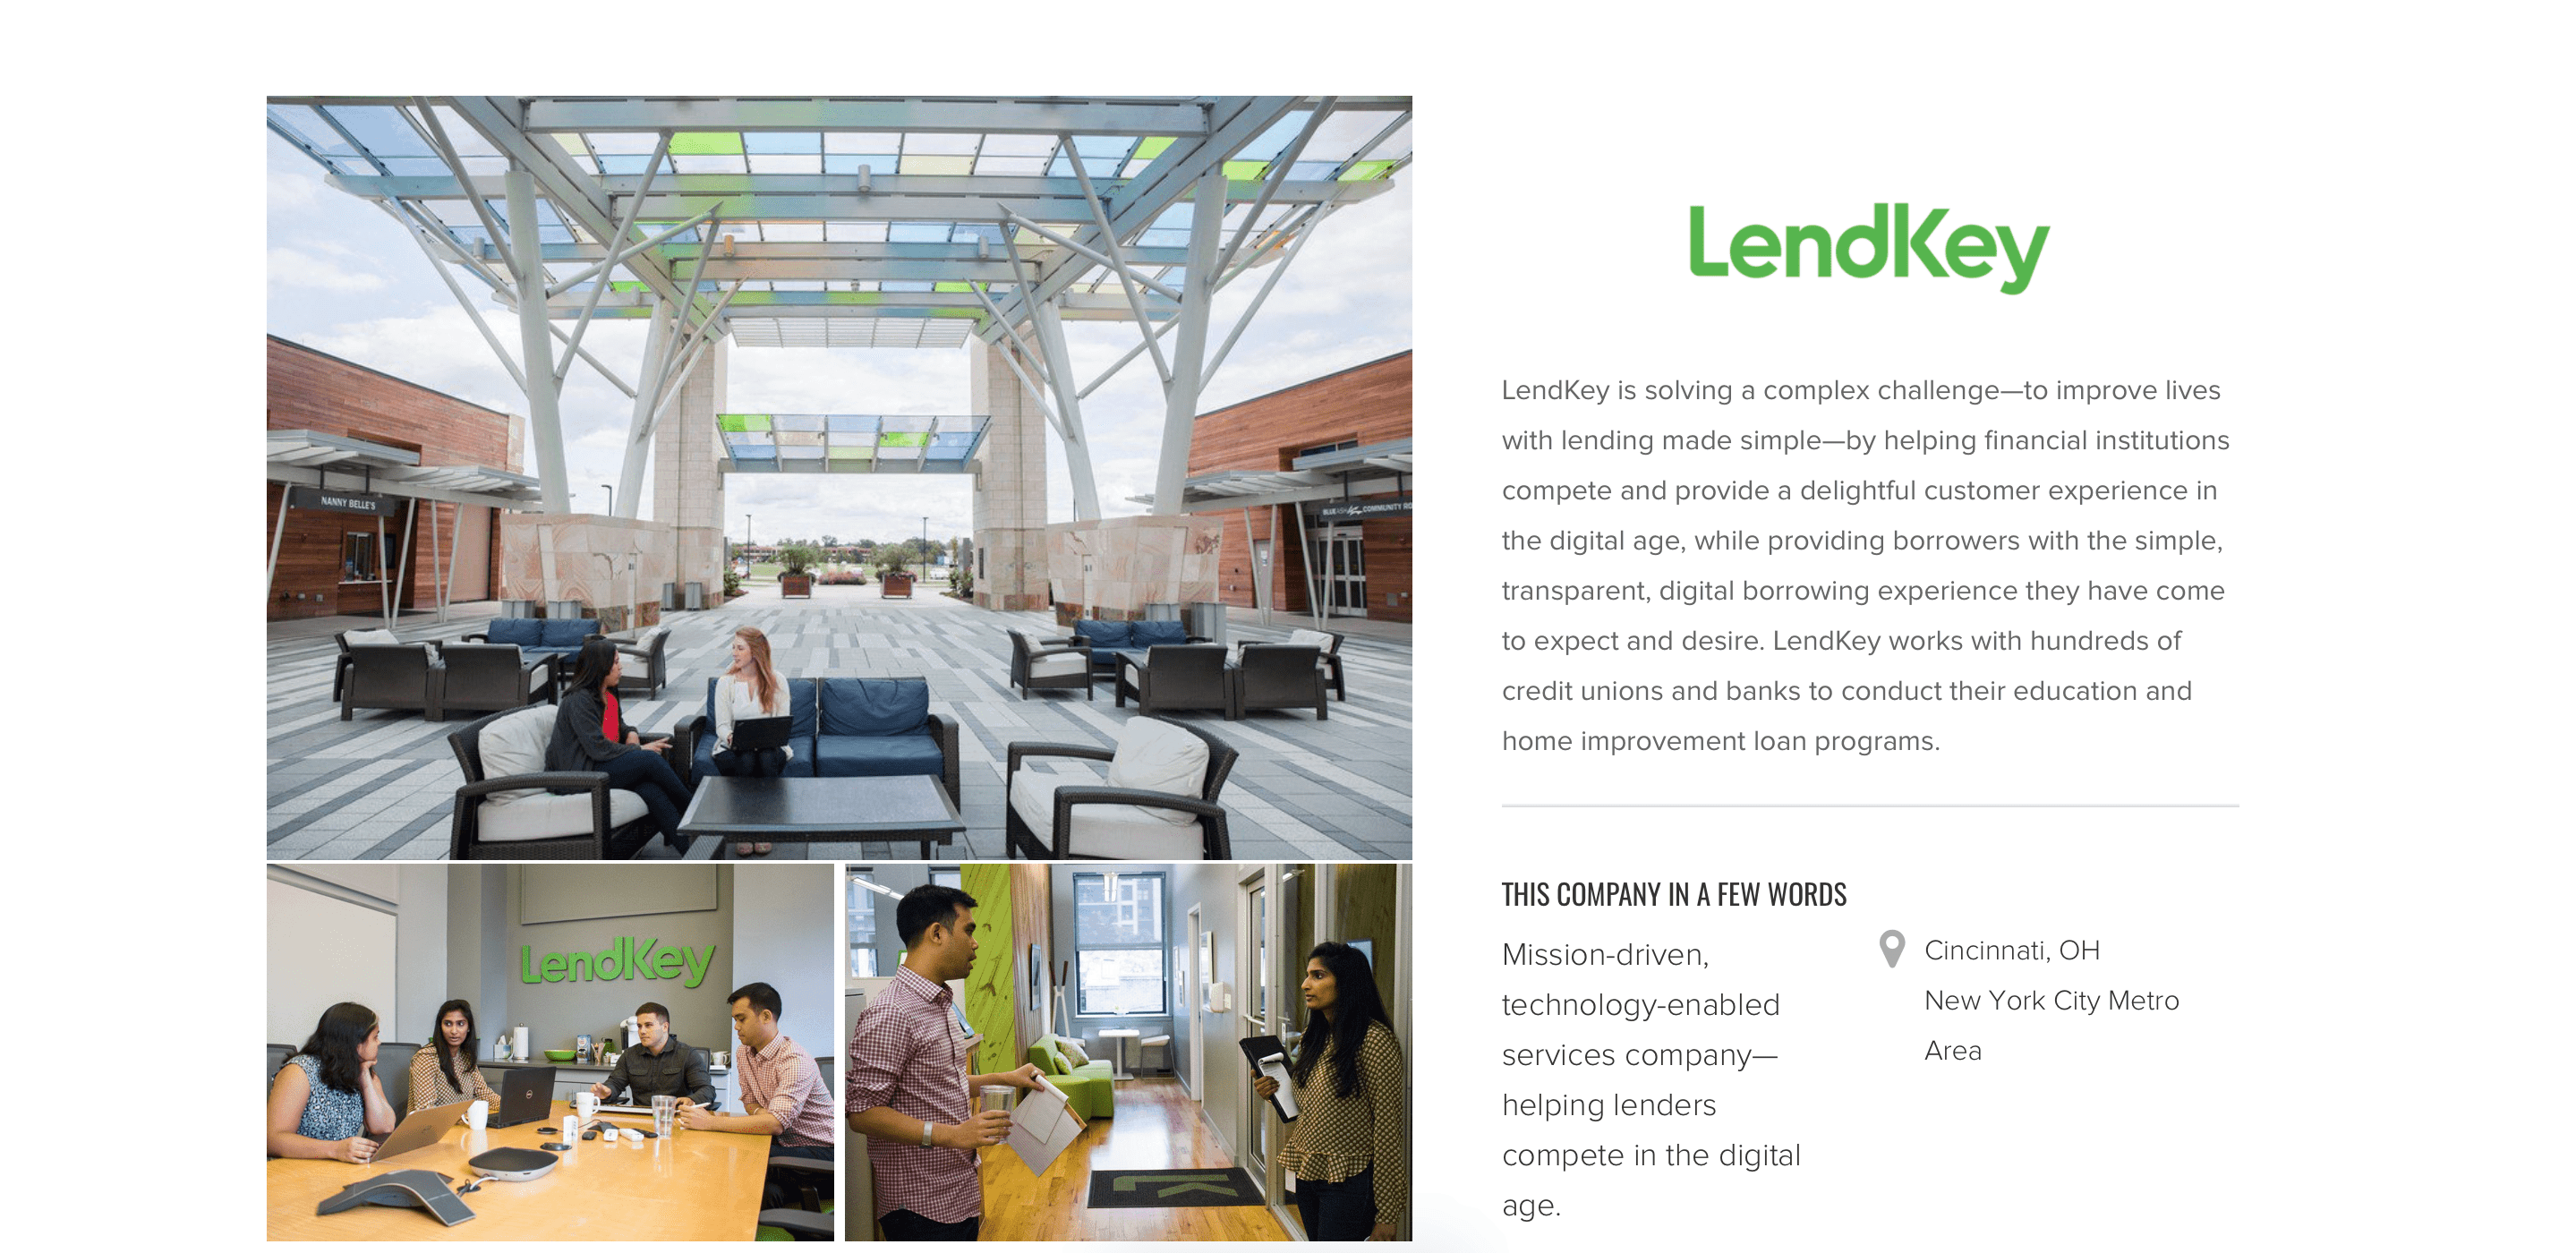 This image is used to help give users a better idea about the values and offerings of LendKey Private.